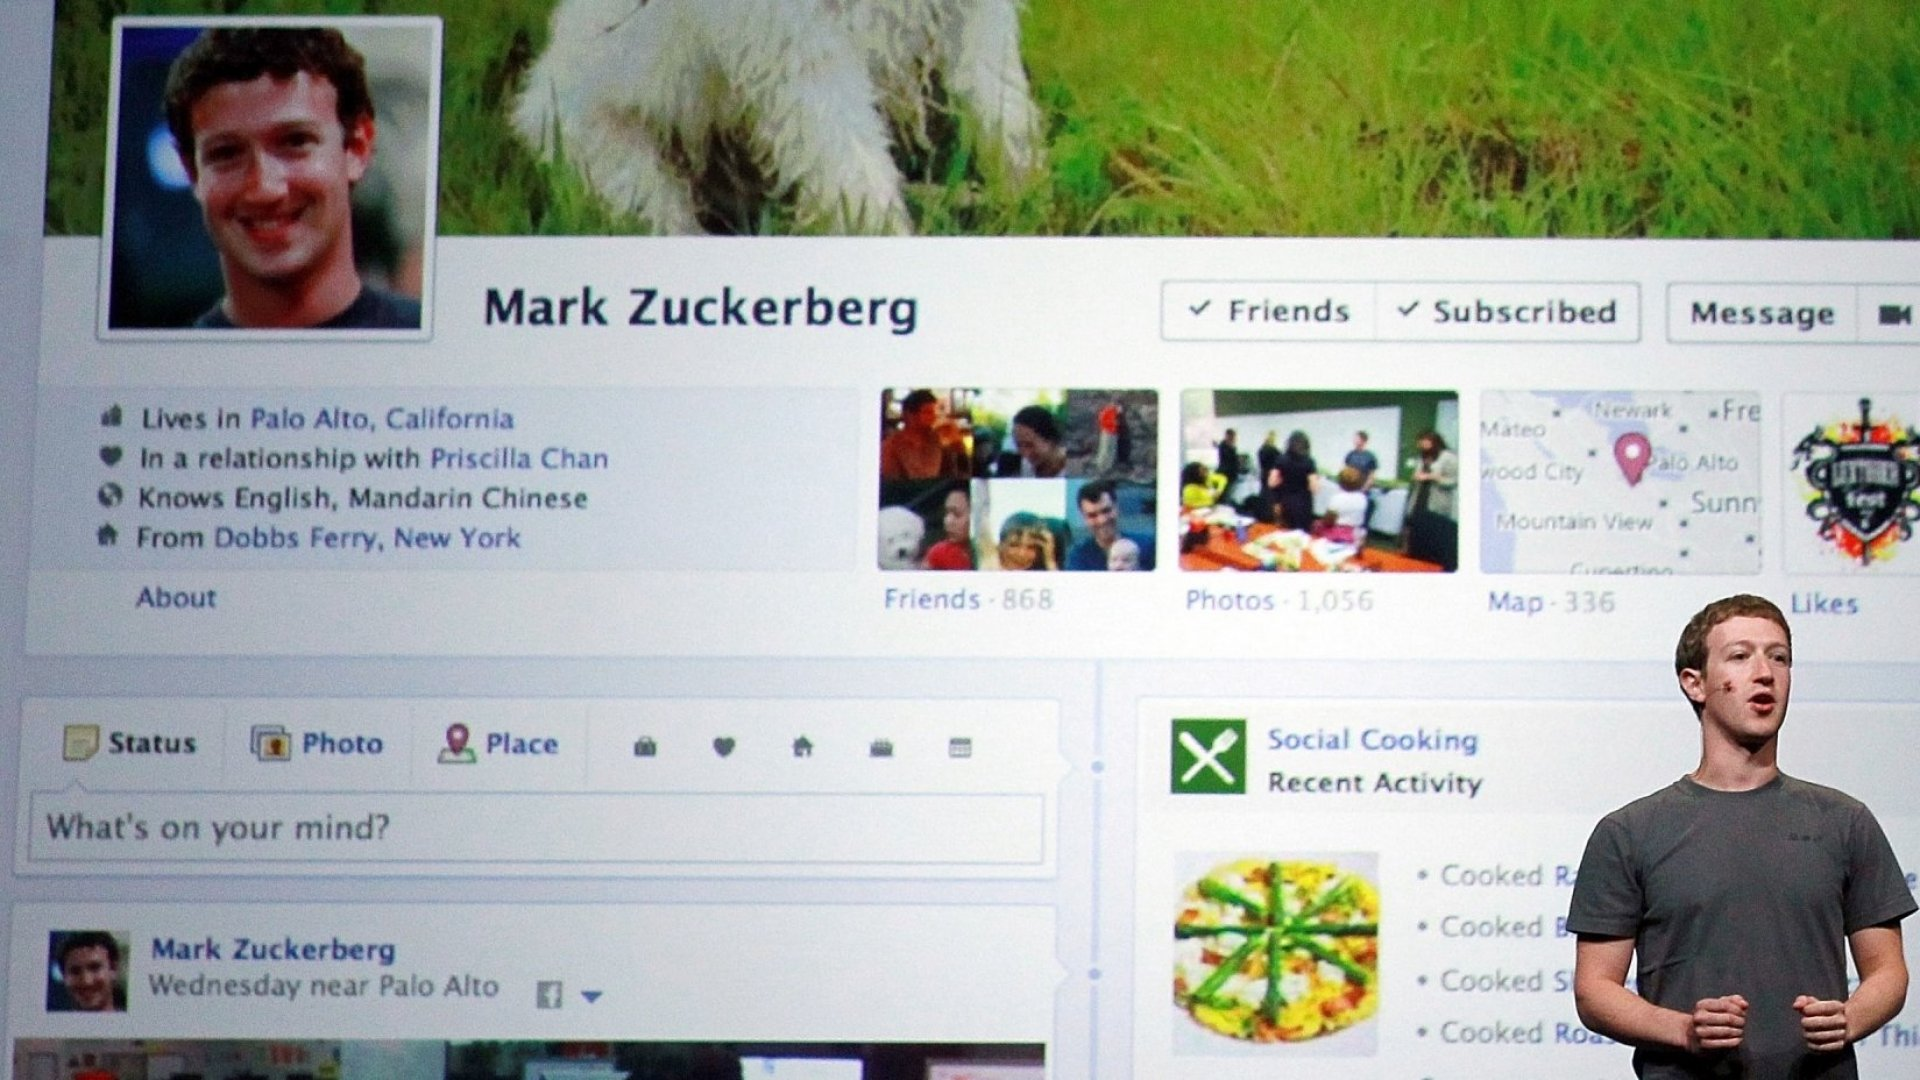 Here's How to Still See Posts from Your Favorite Pages After Major Changes to Facebook News Feed